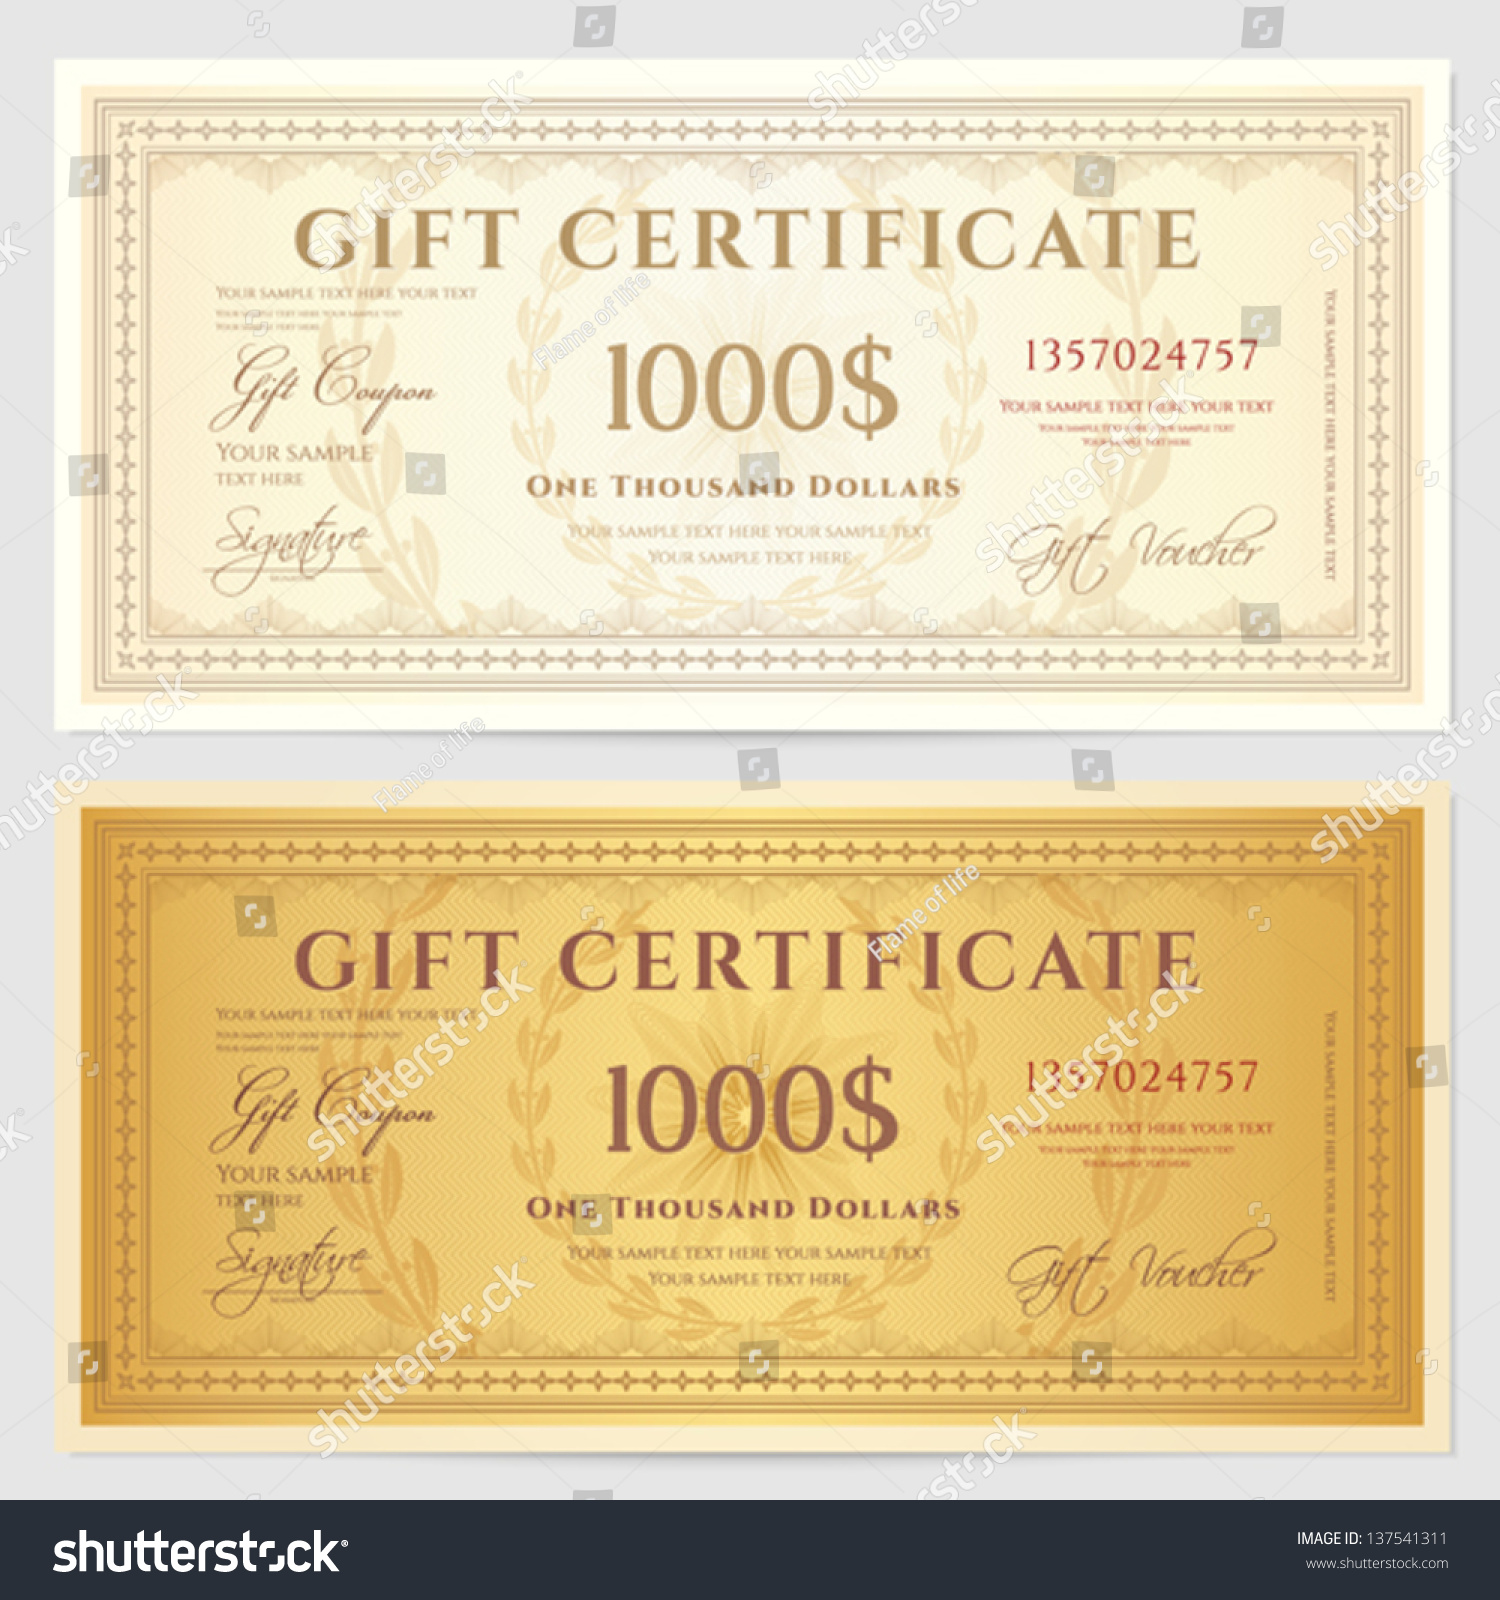 Gift Certificate / Voucher Template With Guilloche Pattern (watermarks) And  Border. Background Usable